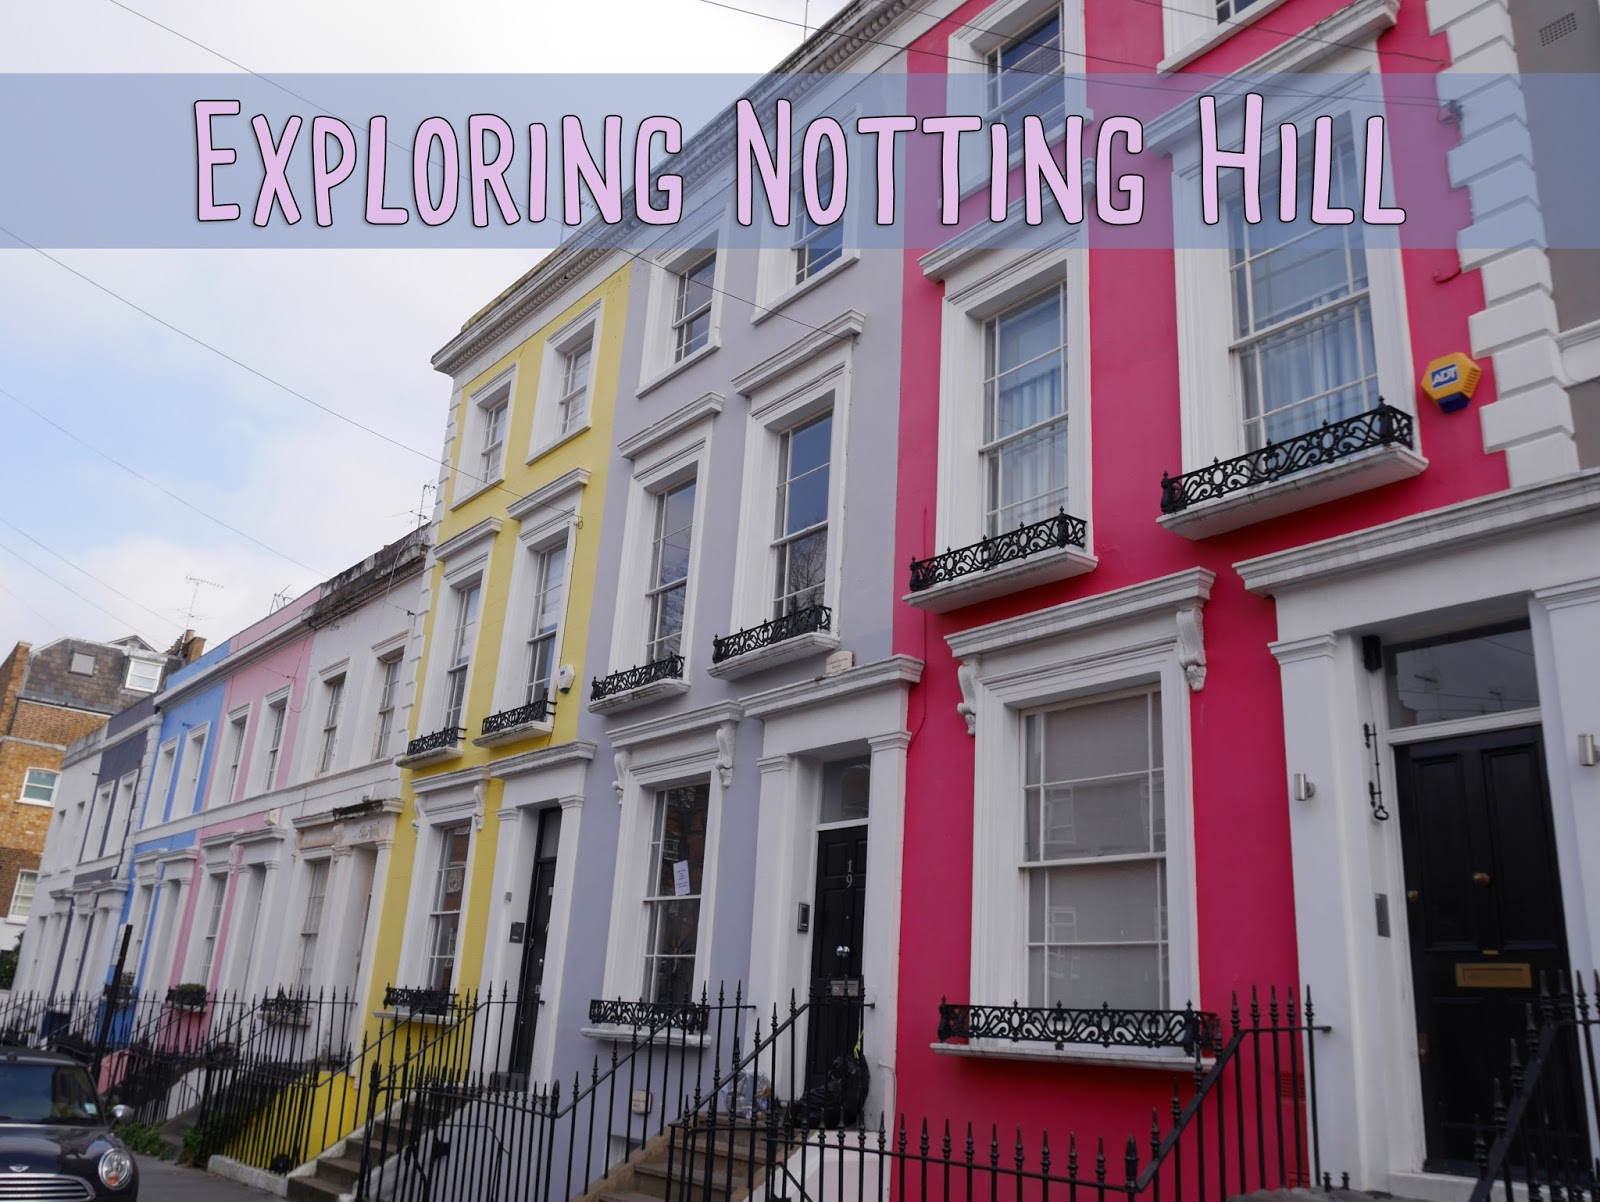 My notting hill blog -  The Houses In Notting Hill Colourful Neat And Delightful There Was One Particular Pastel Pink House That Would Definitely Be My Dream Future Home